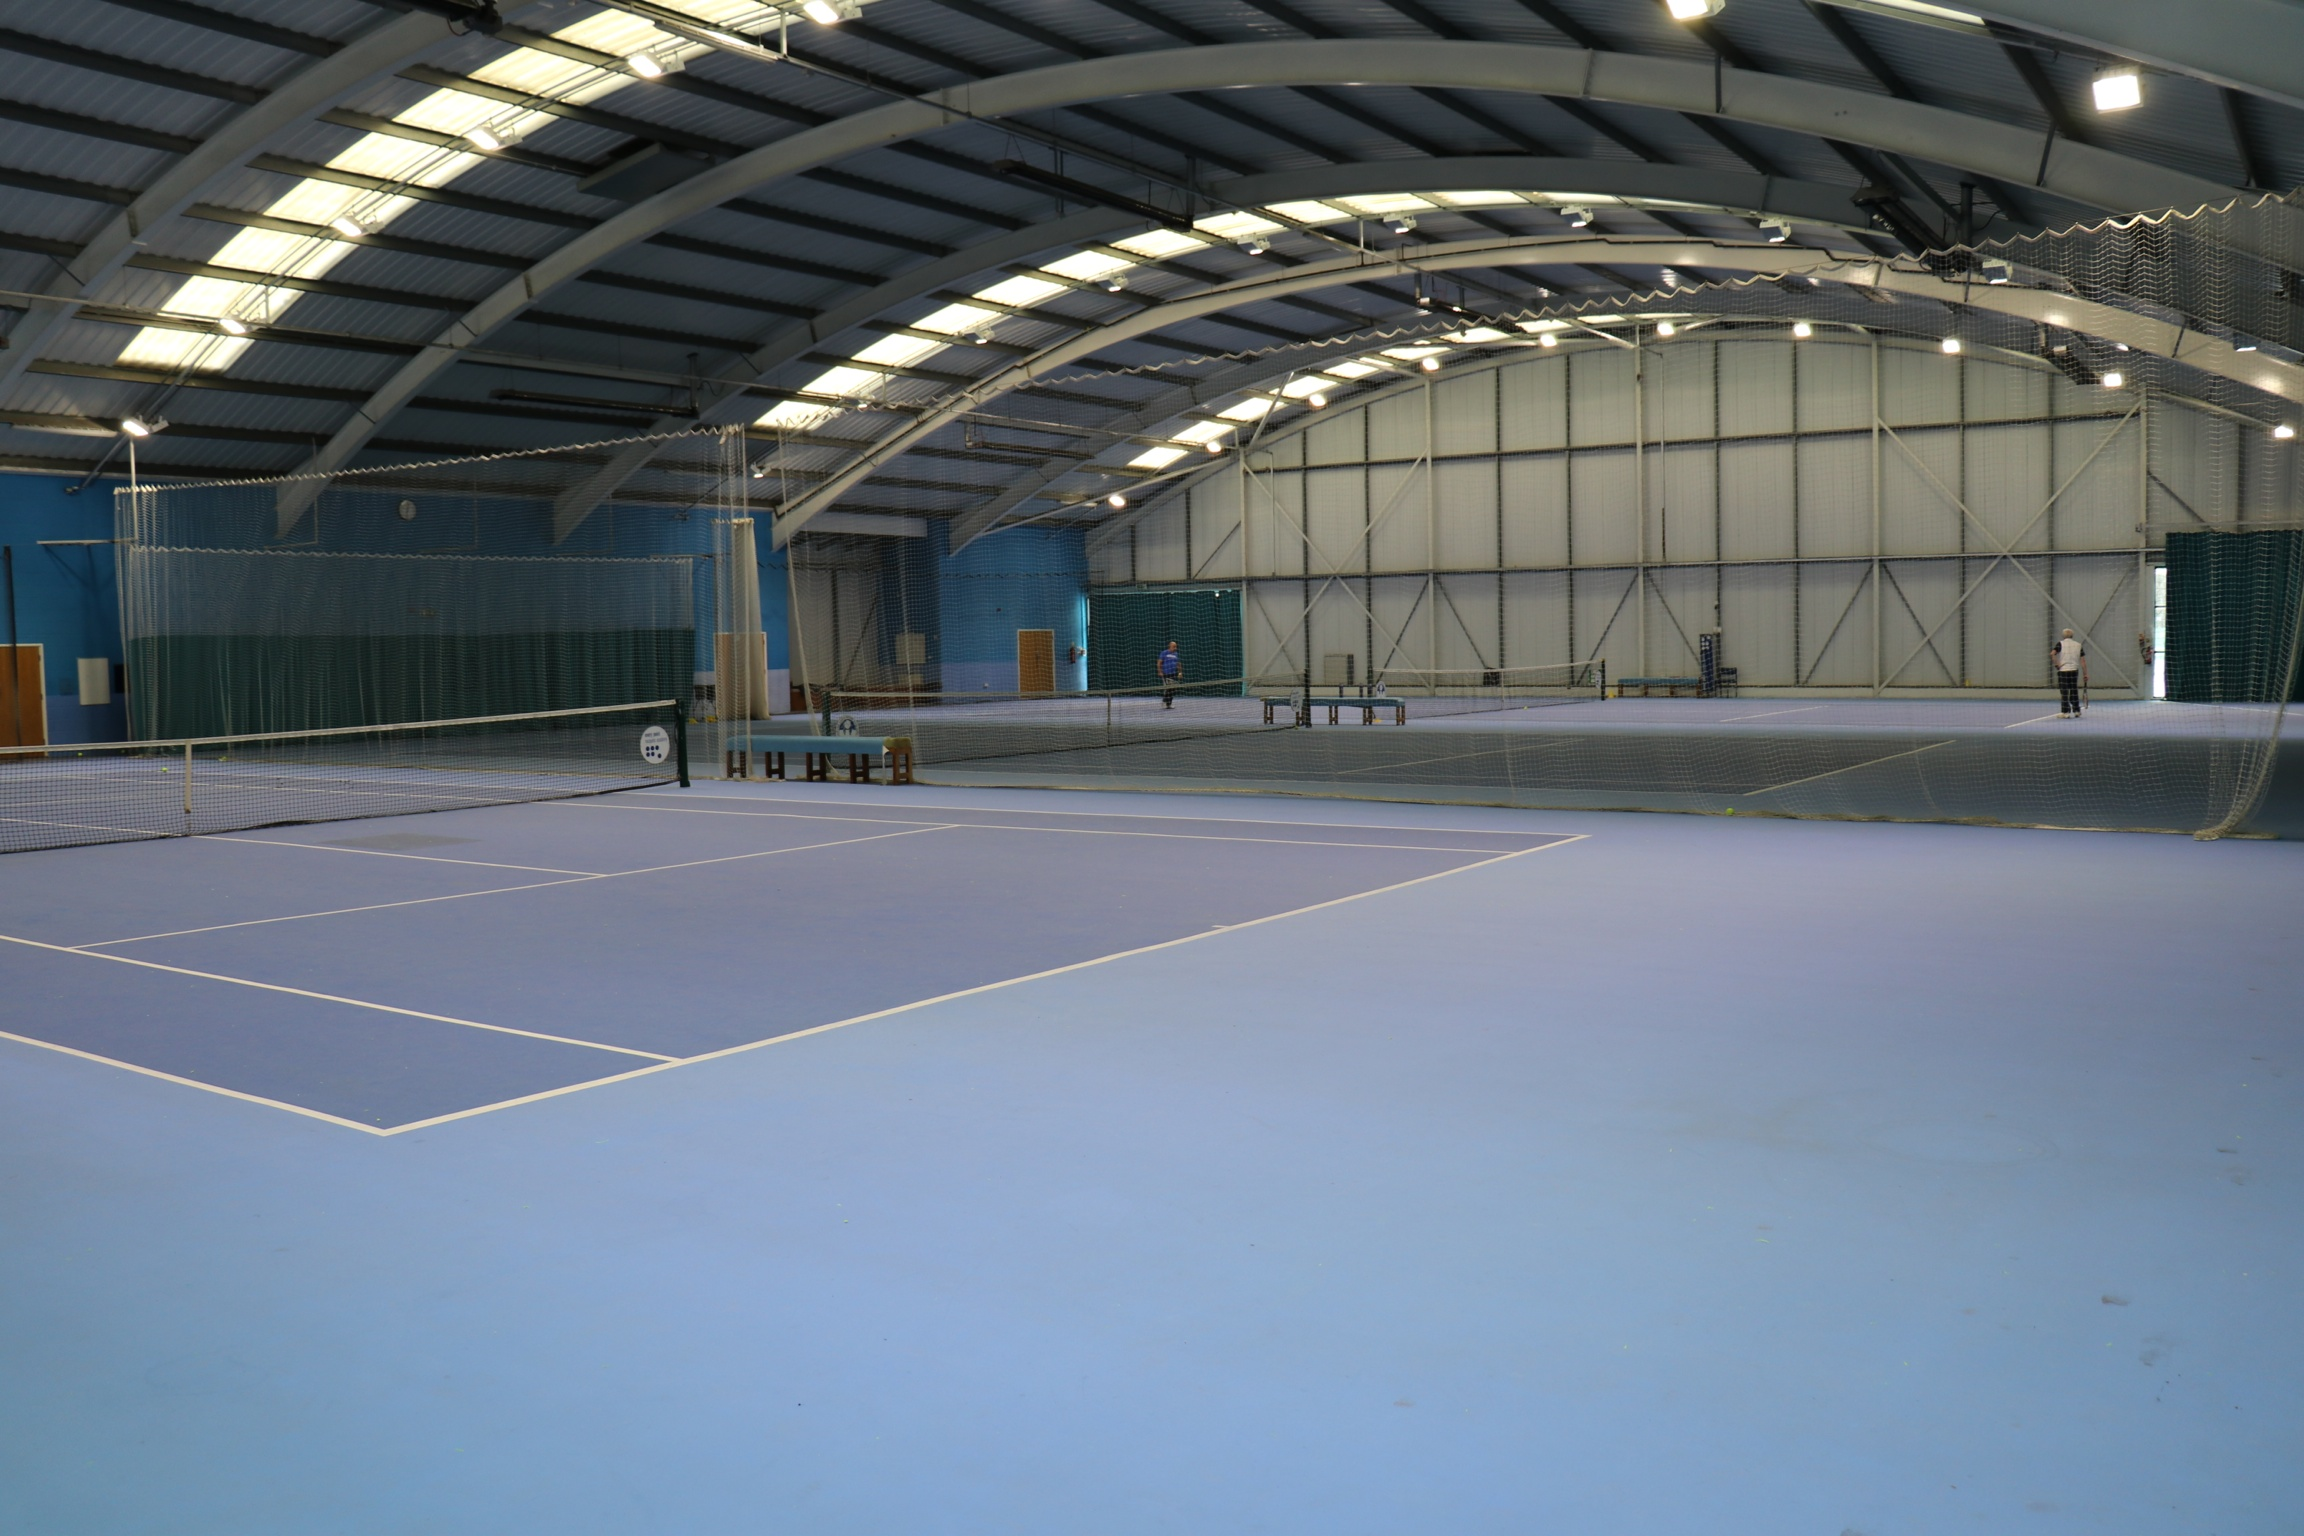 Divine Tennis Wolverhampton Lawn Tennis Squash Club Yates Field House Hours Yates Field House Classes curbed Yates Field House